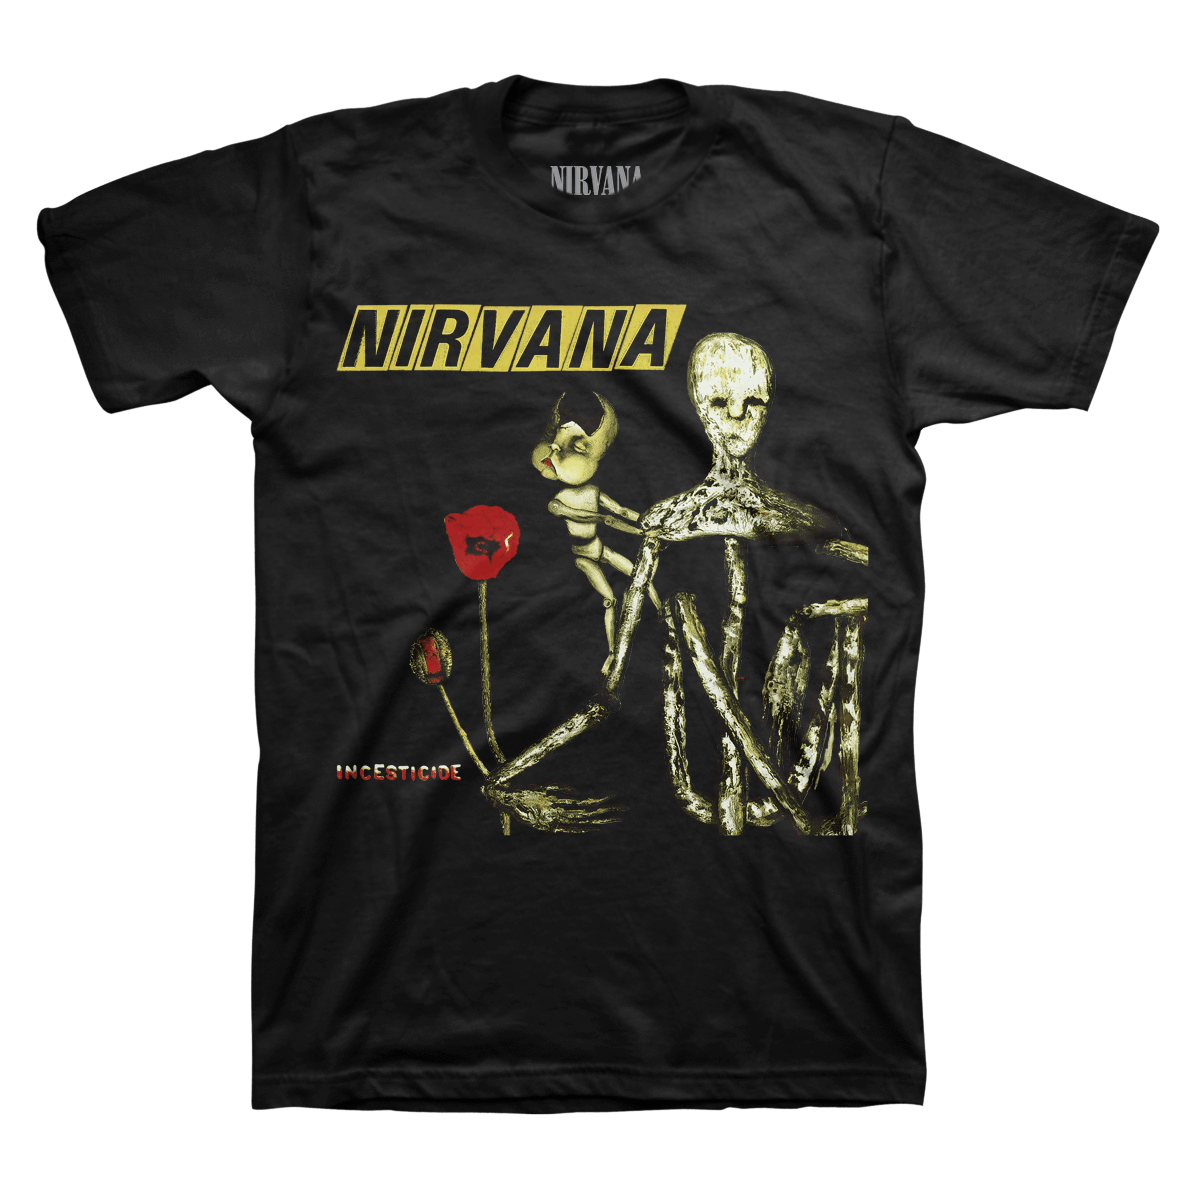 Nirvana transparent black and white. Incesticide tee official store